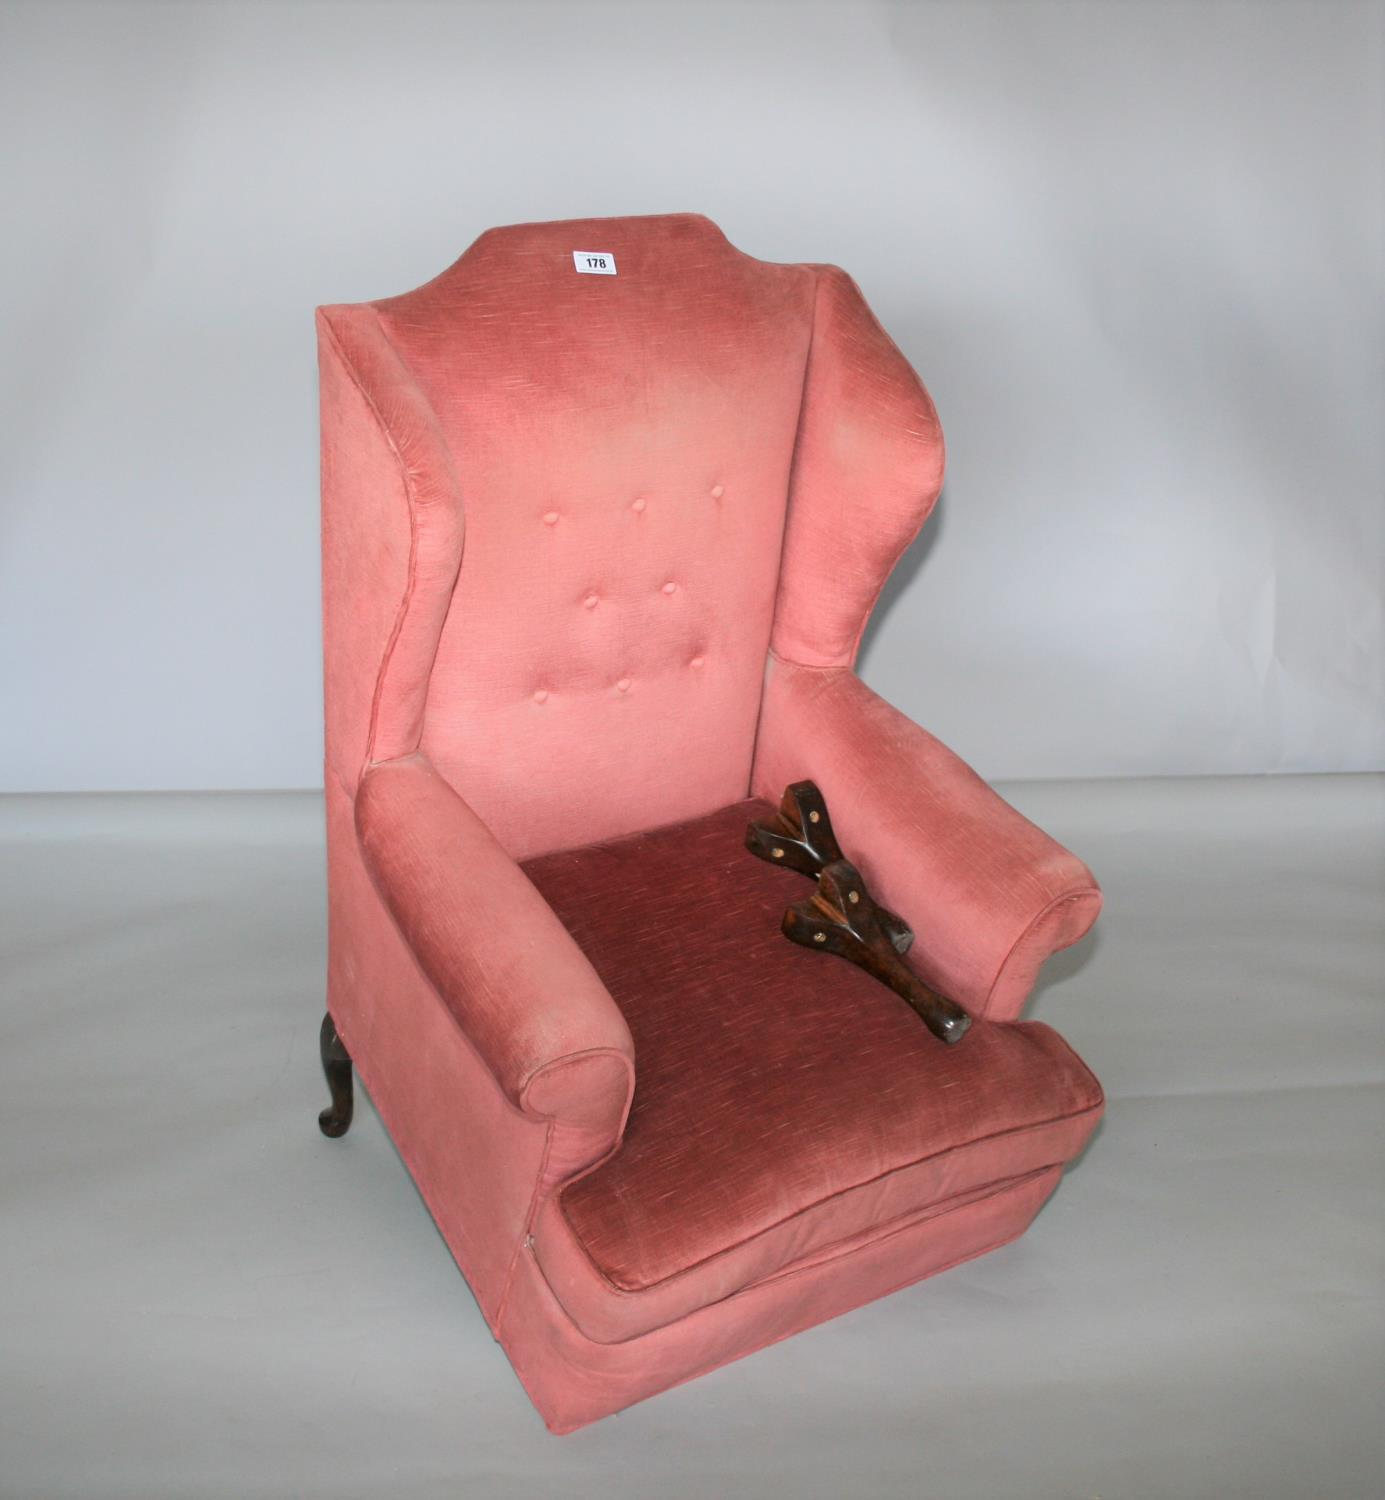 Queen Ann style wing back chair (as found) 75W x 120H x 75D